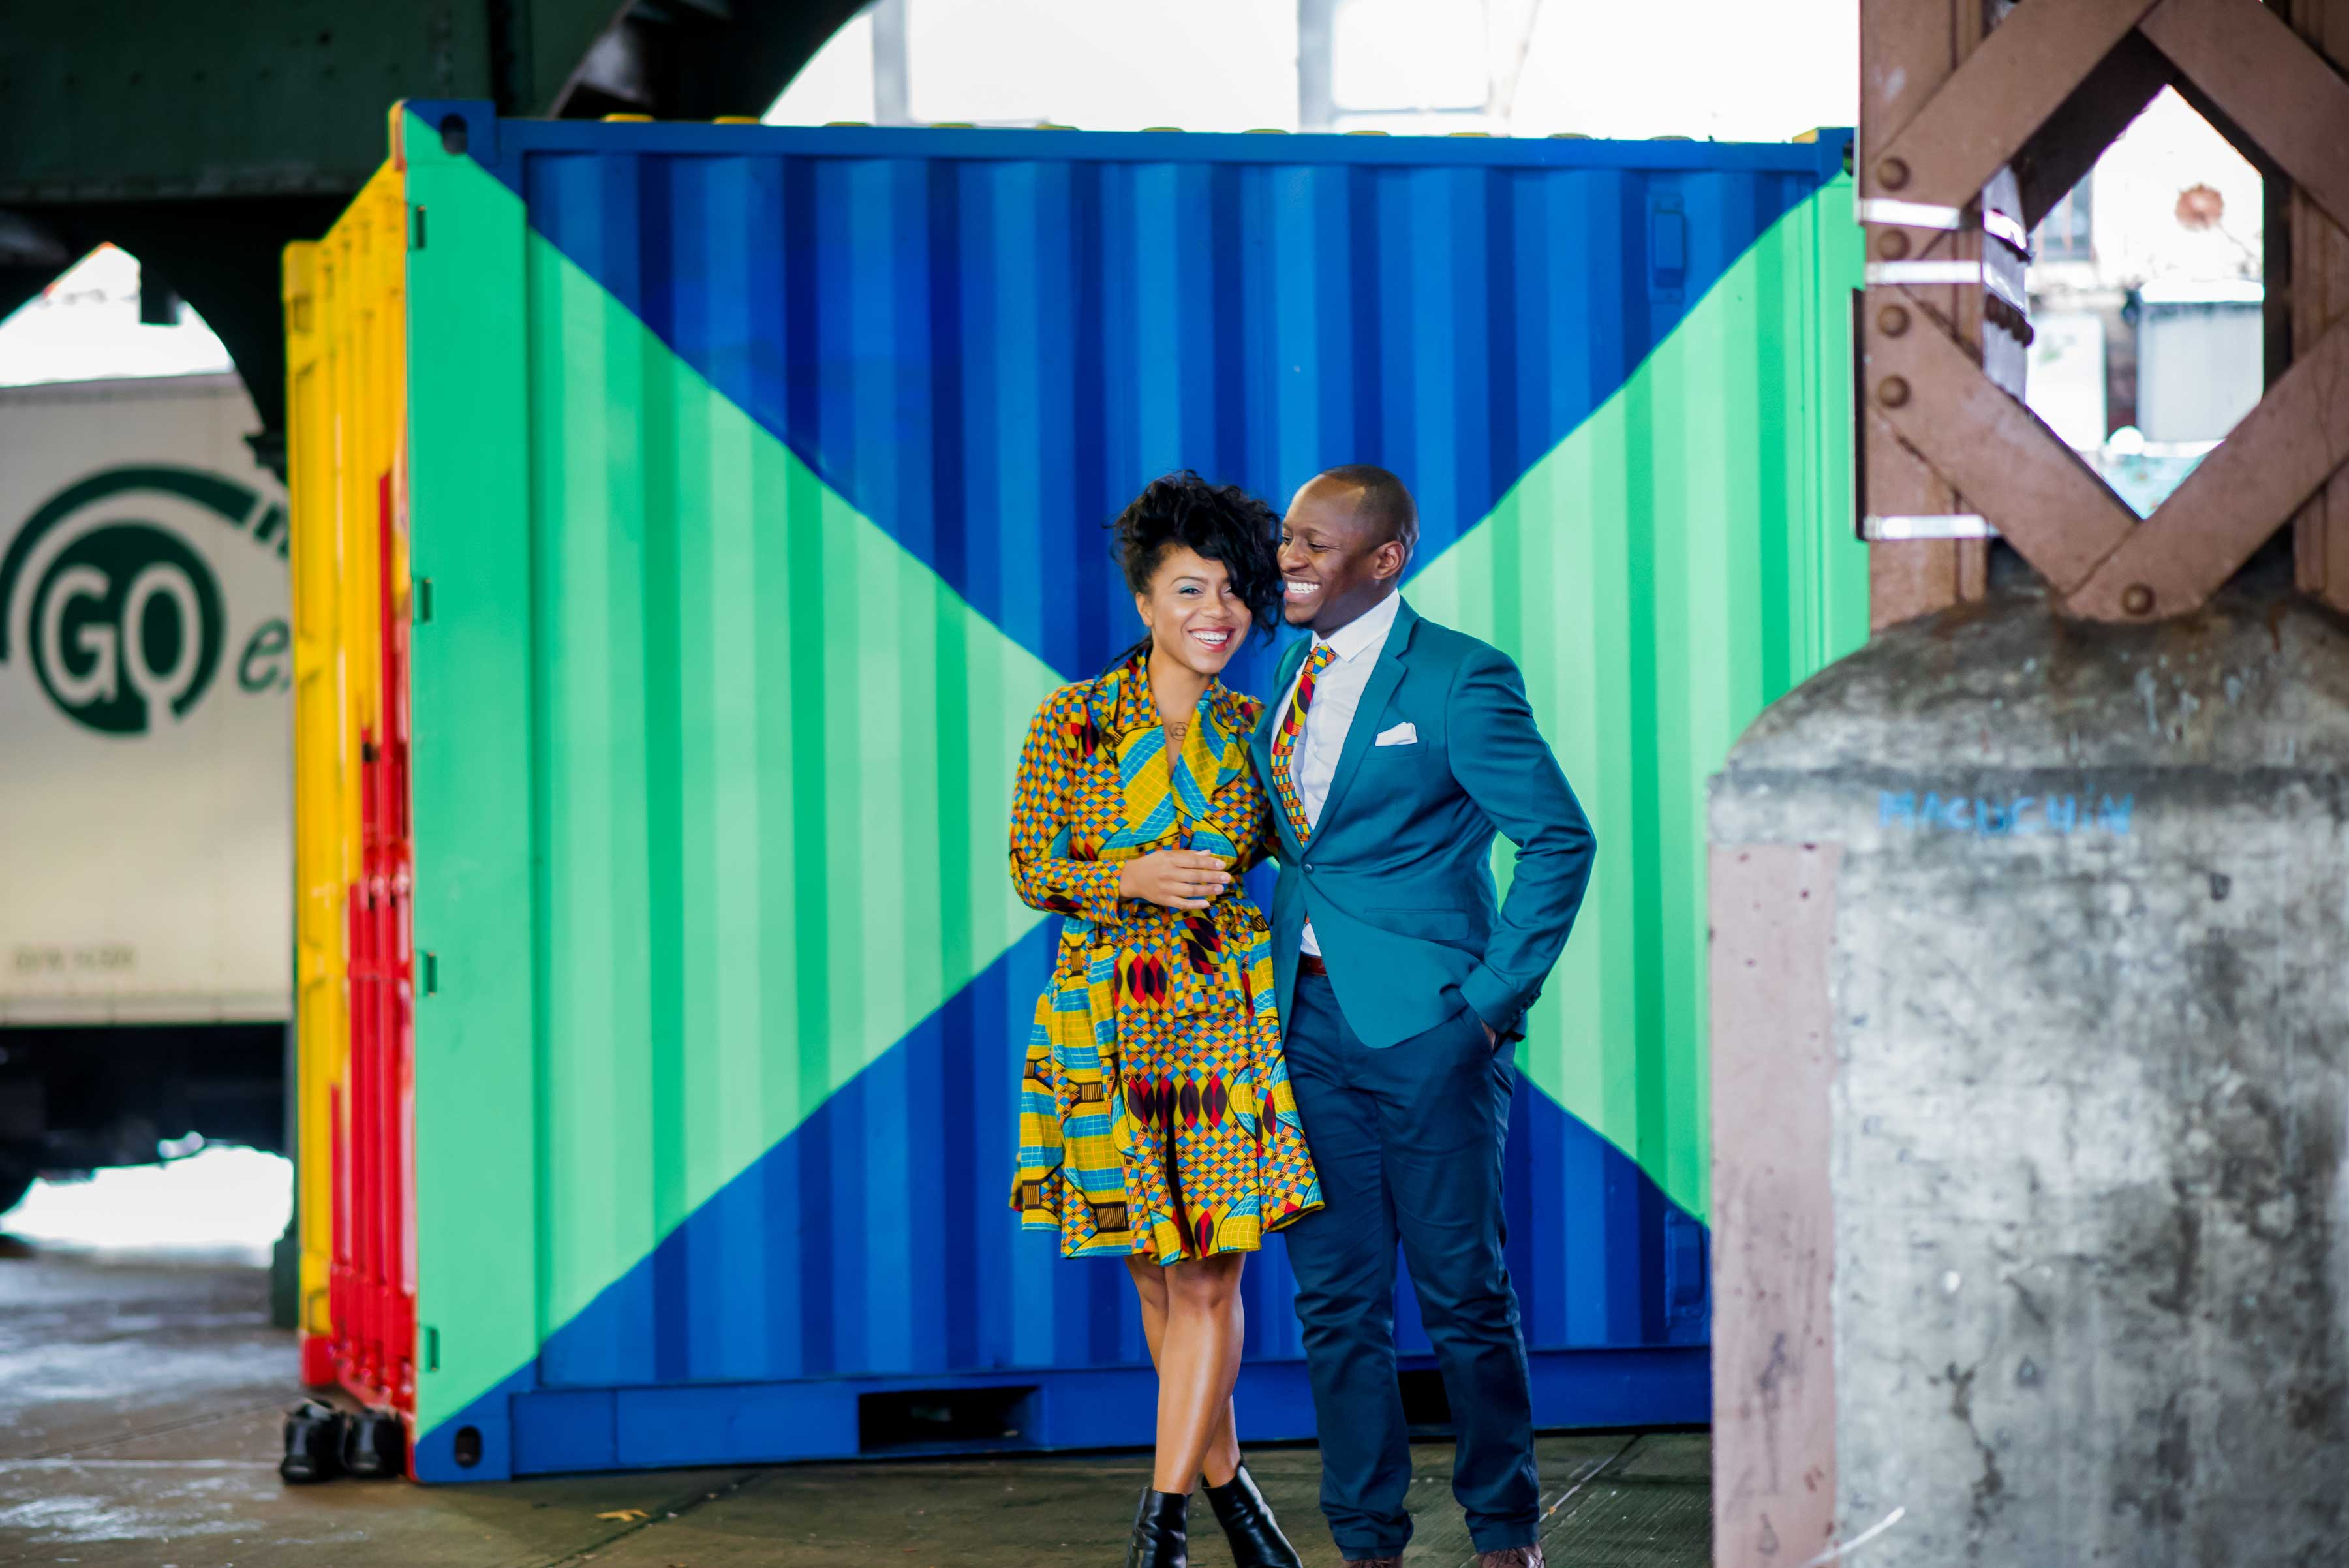 Bride smiling during colorful engagement session in Harlem New York City